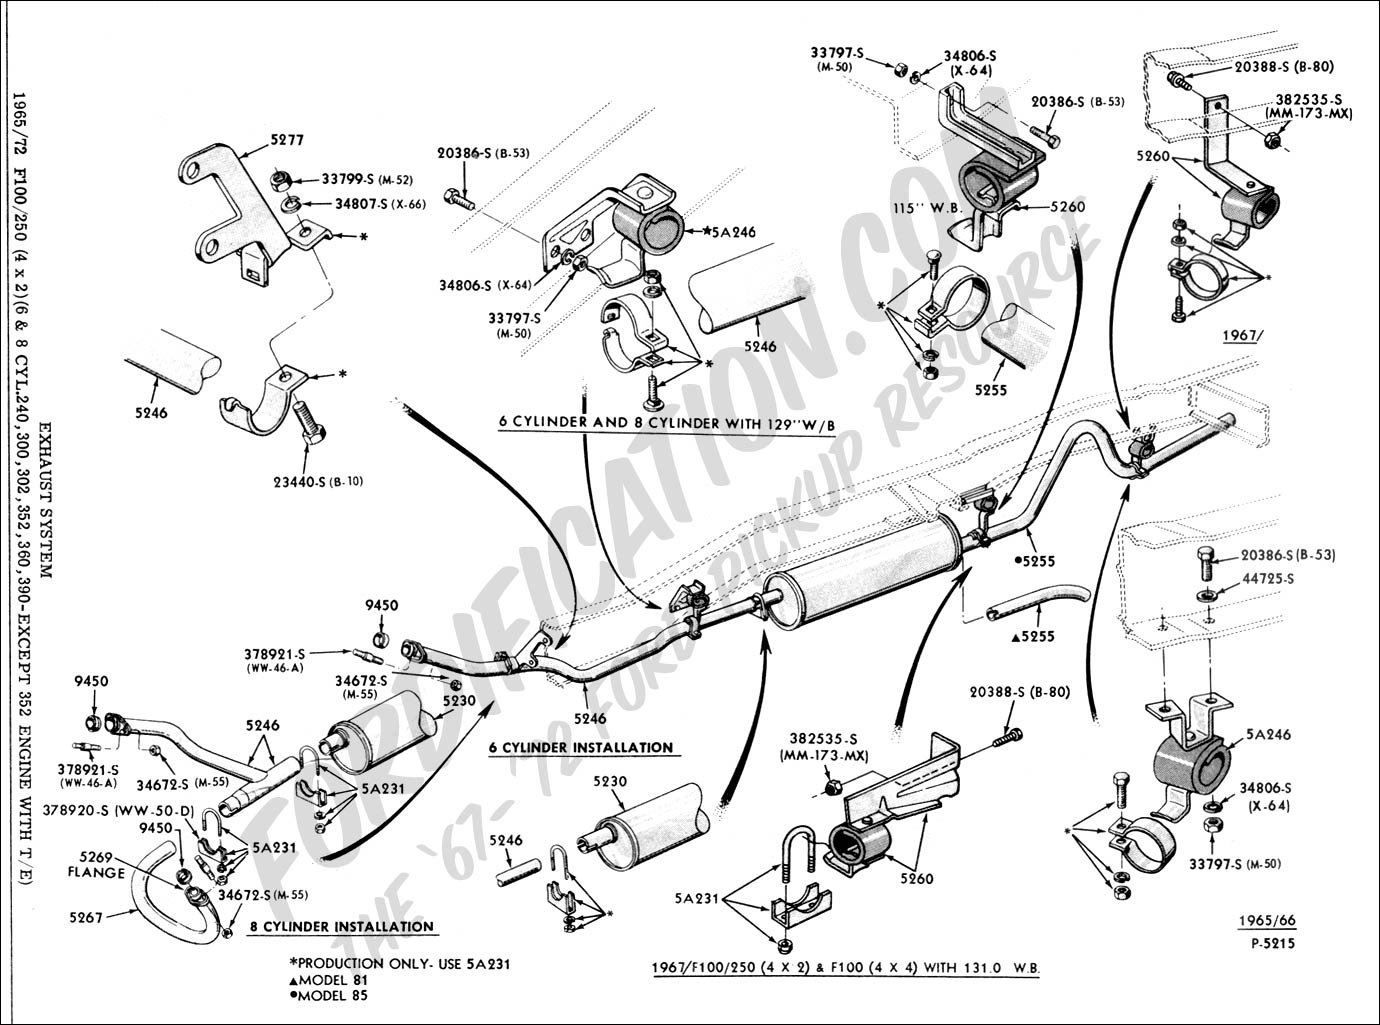 1989 Ford F 150 4x4 5 8 Engine Diagram. 1989 ford f 250